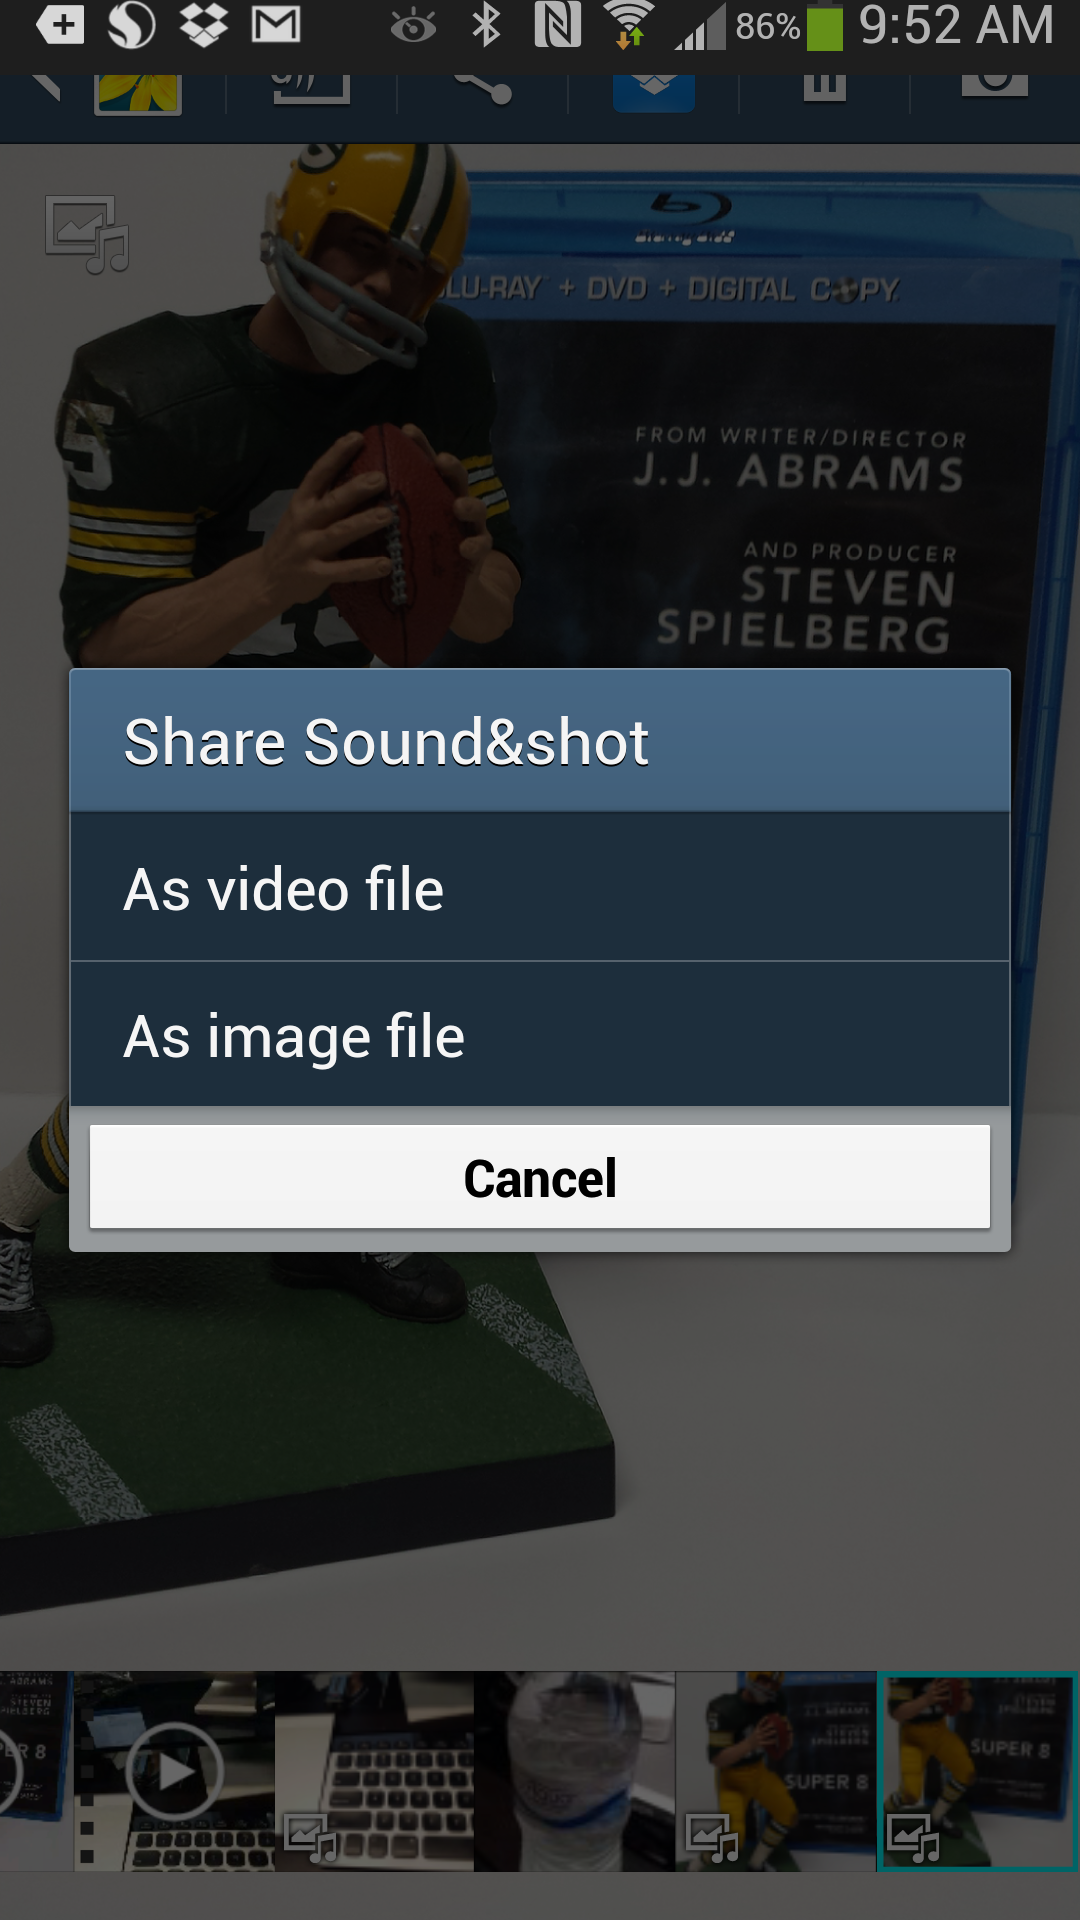 How to share a Samsung Galaxy S4 Sound Shot as a video